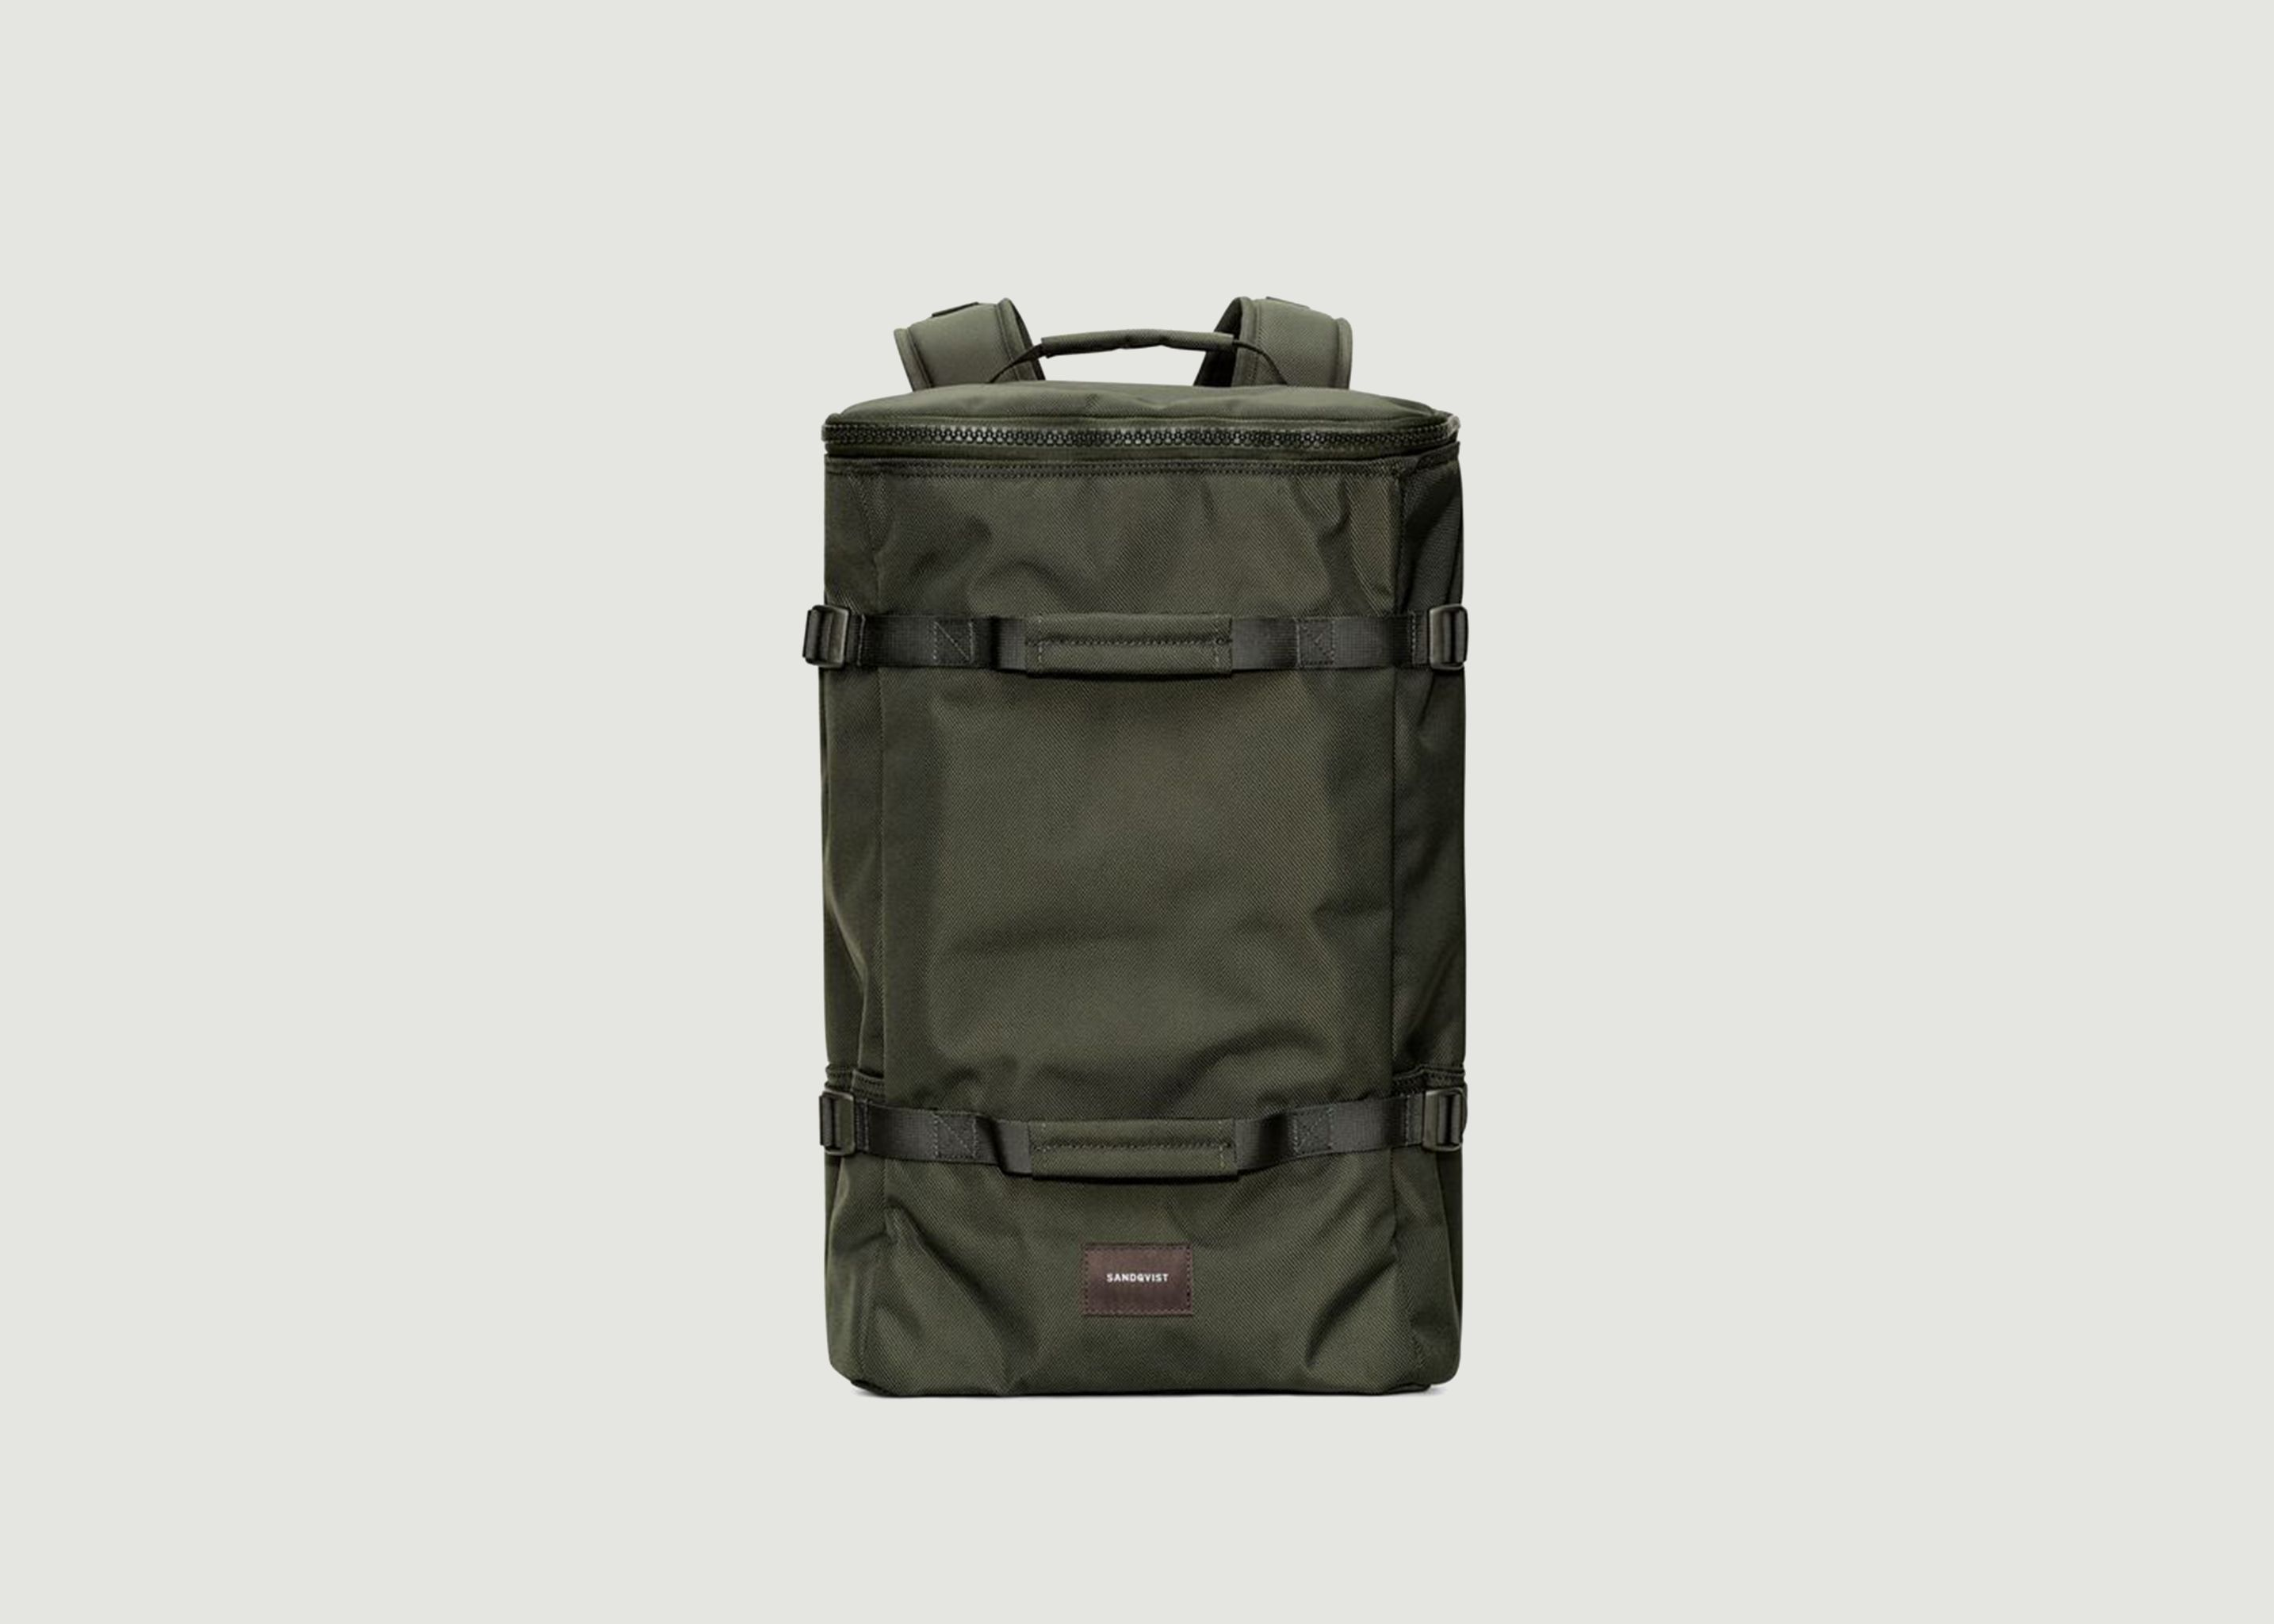 Sandqvist Small Zack Sac L'exception Khaki g747t0w